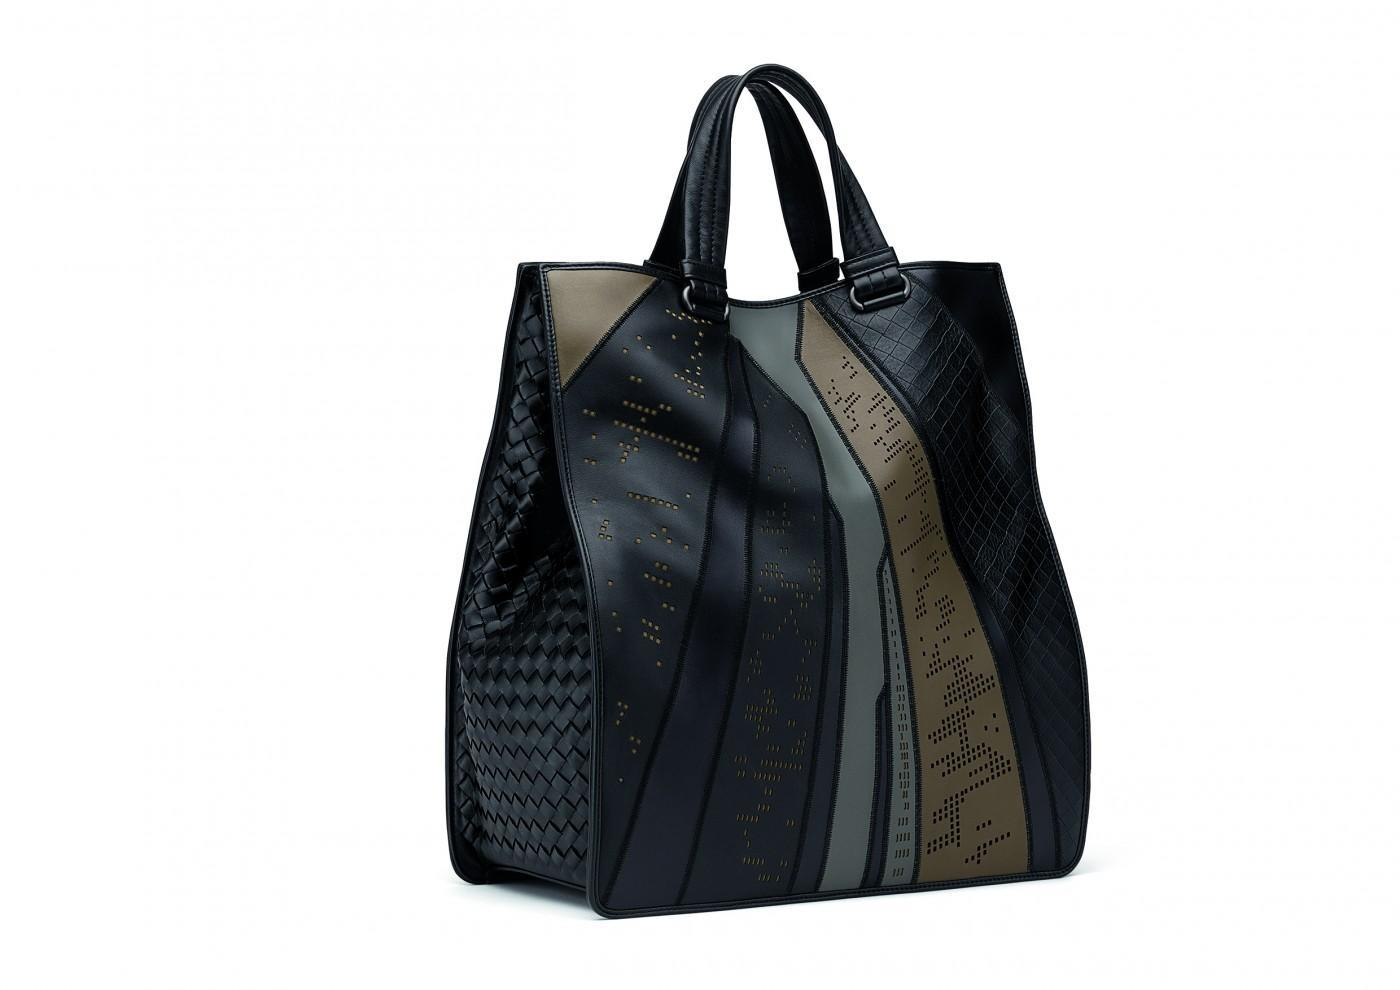 ... uses a special inlay leather work that s cut and pieced together by hand  for a subtle representation of the city s grid. The Intrecciato Prospect bag  ... fae837115e708